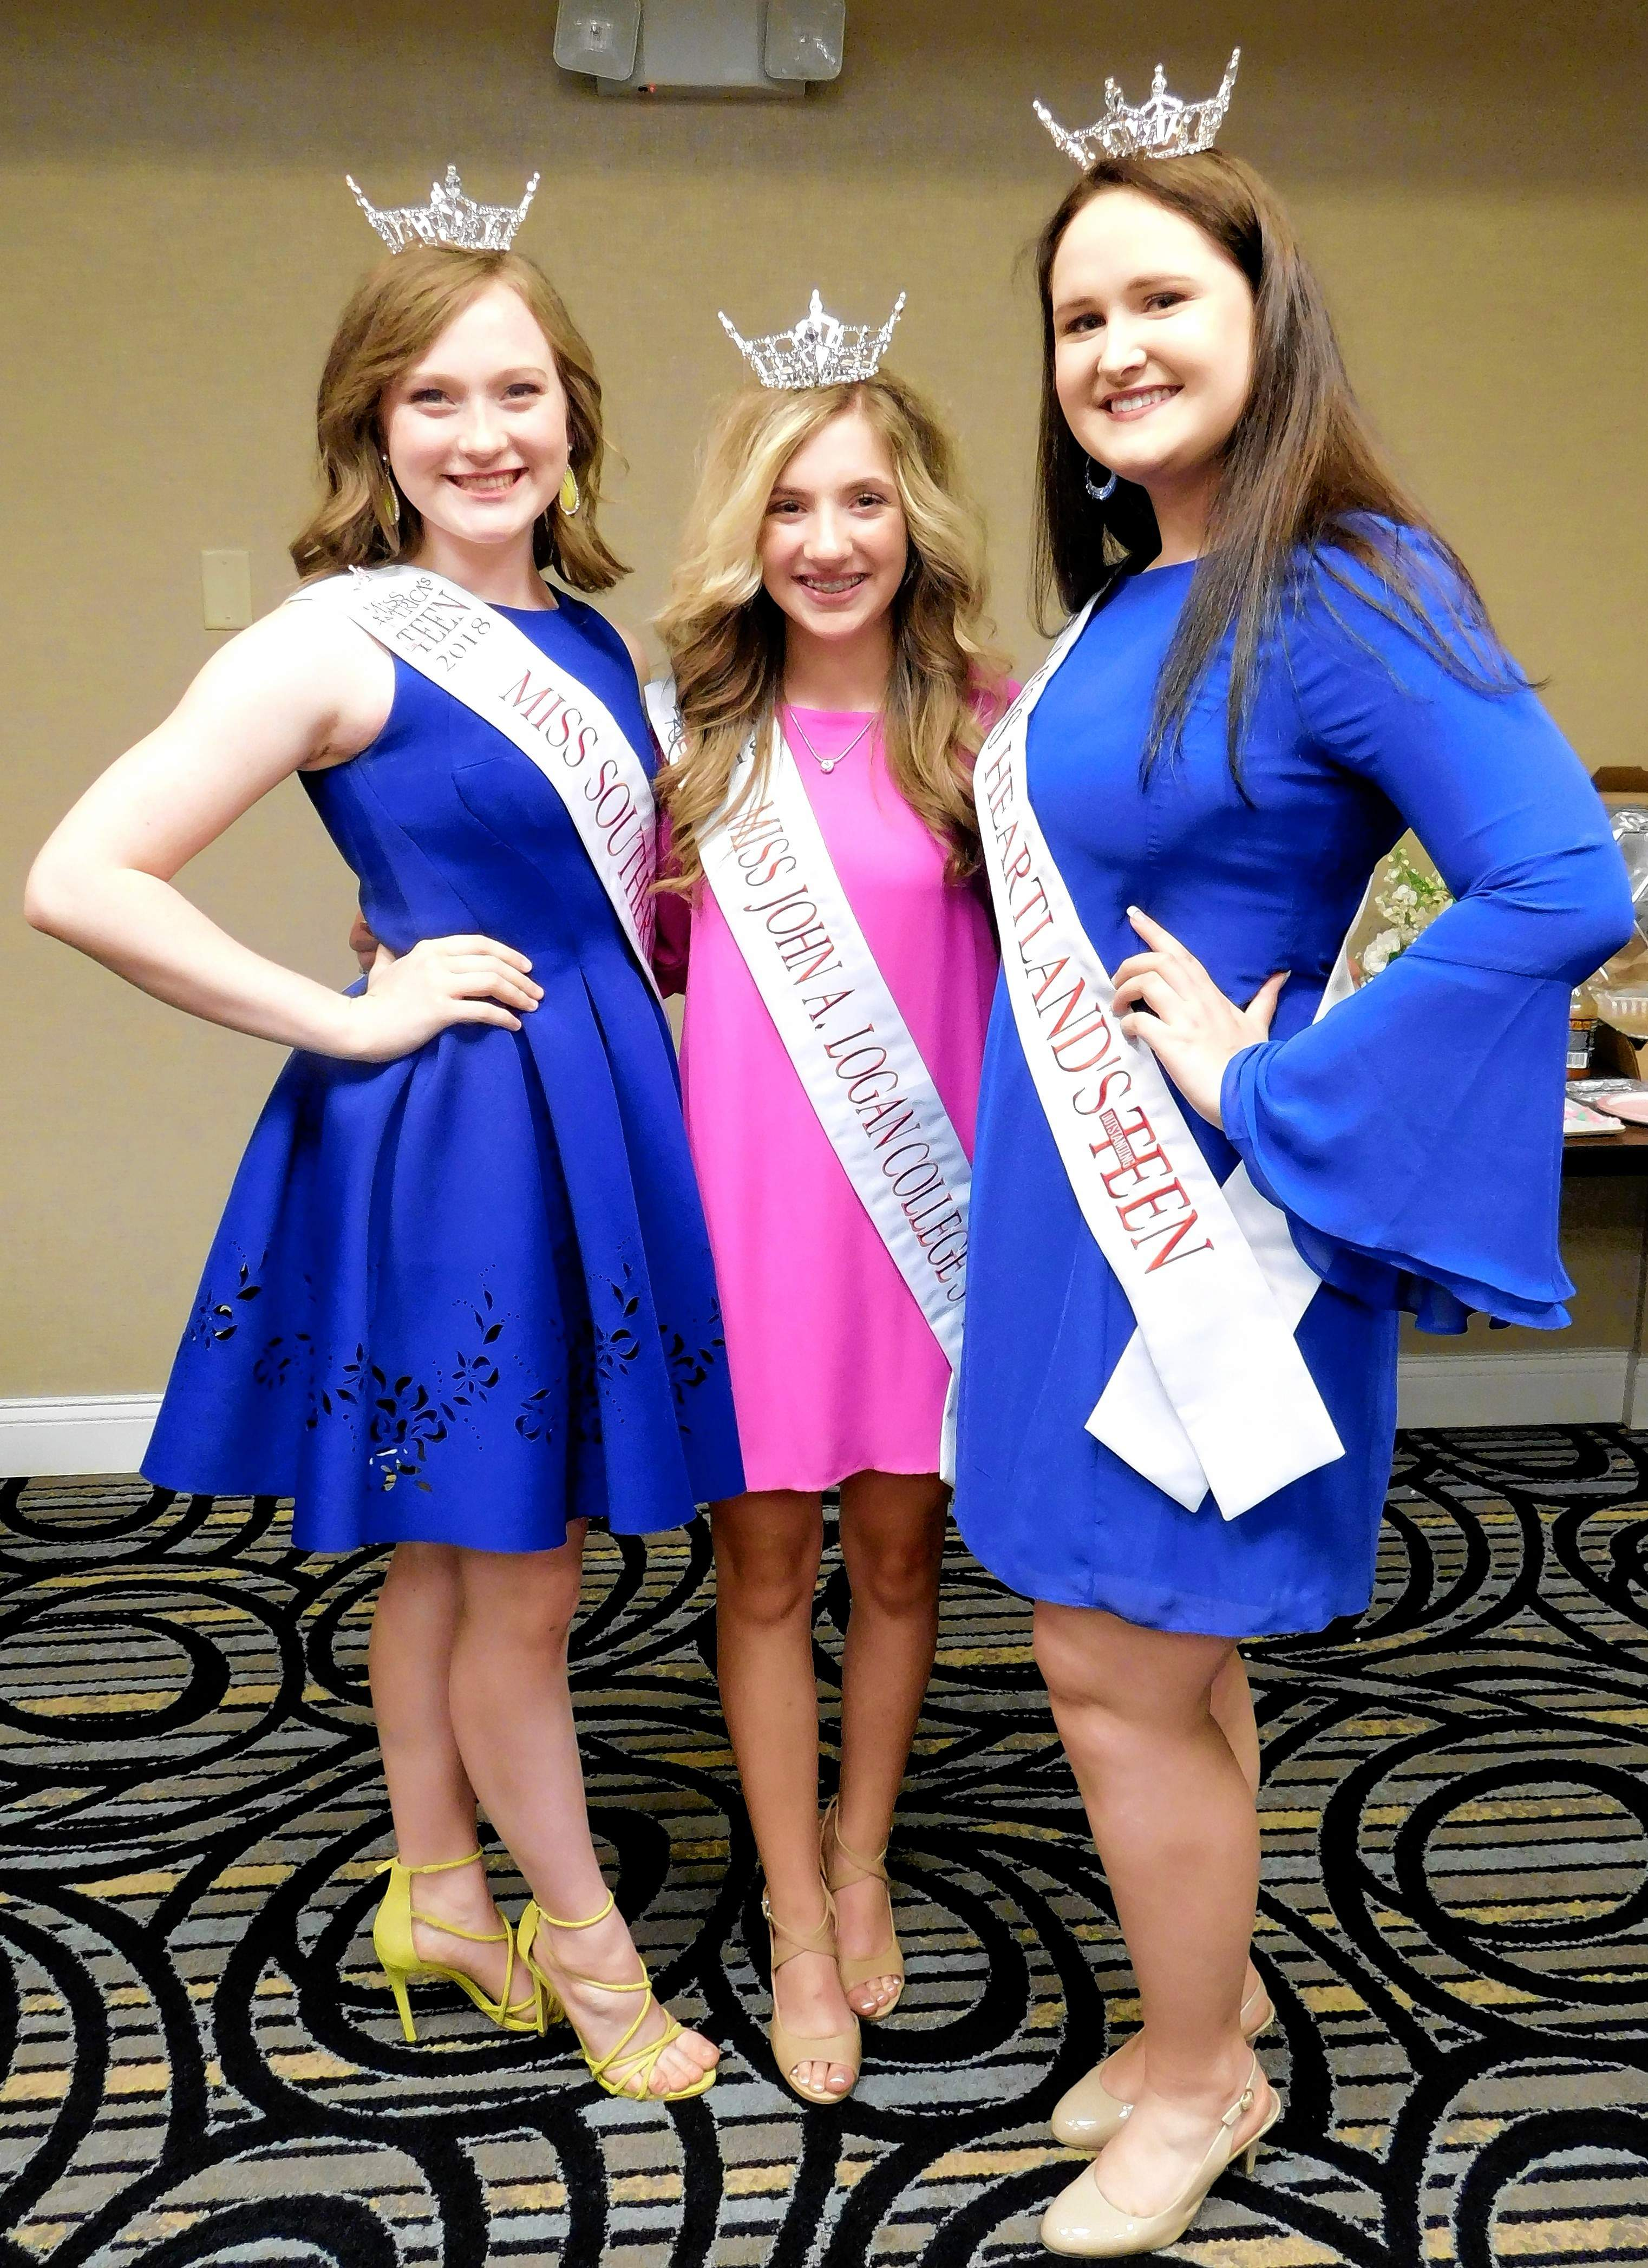 Victoria Shore, Tara Kay Tanner, and Anna Madura will compete in the Miss Illinois Outstanding Teen pageant this week at the Marion Cultural and Civic Center.